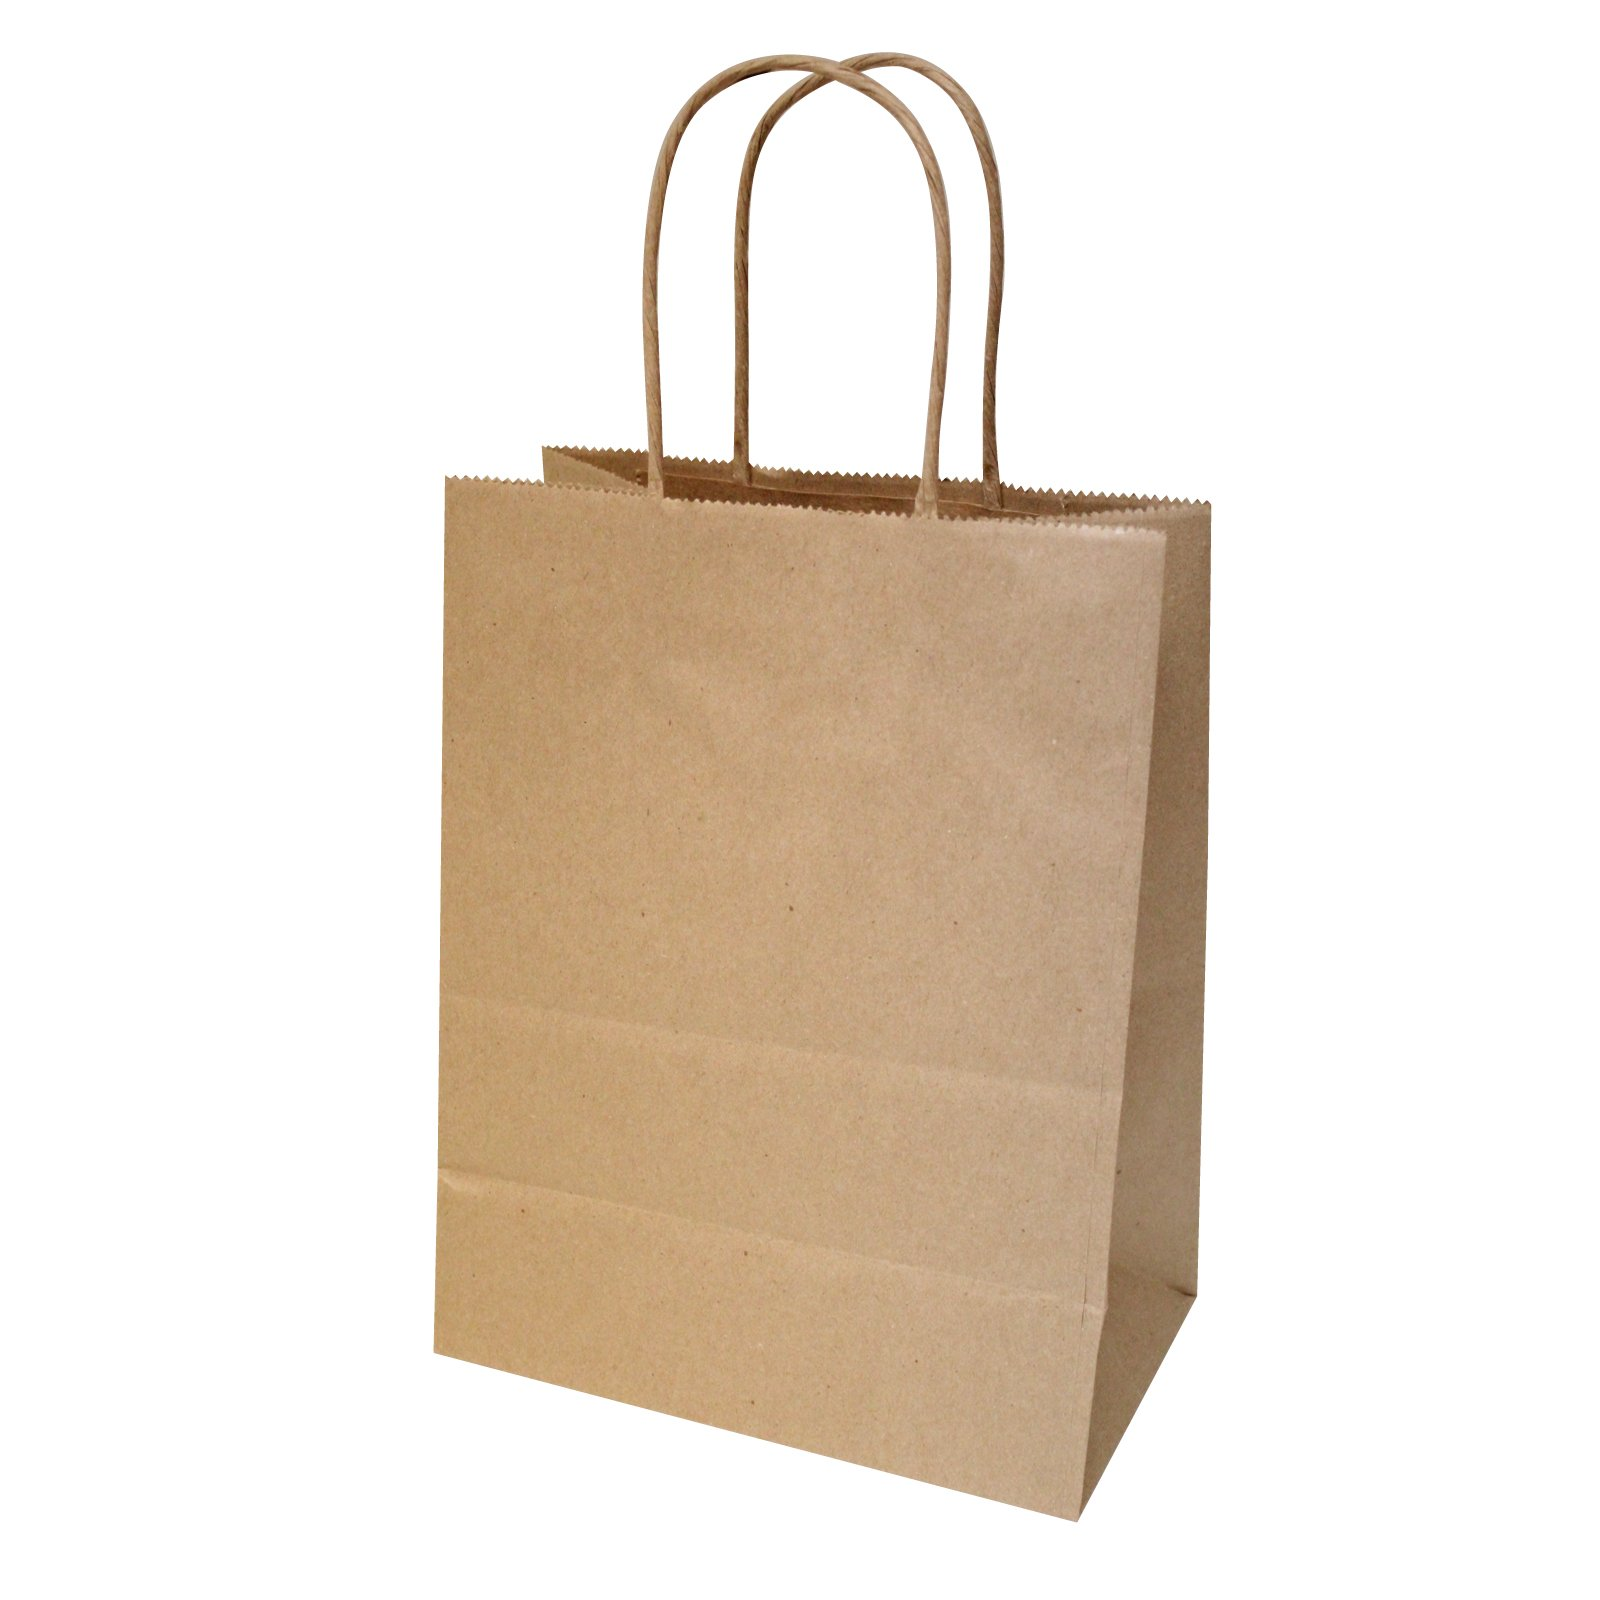 Flexicore Packaging 8''x4.75''x10''-100 Pcs-Brown Kraft Paper Shopping, Mechandise, Party, Gift Bags by Duro (Image #3)